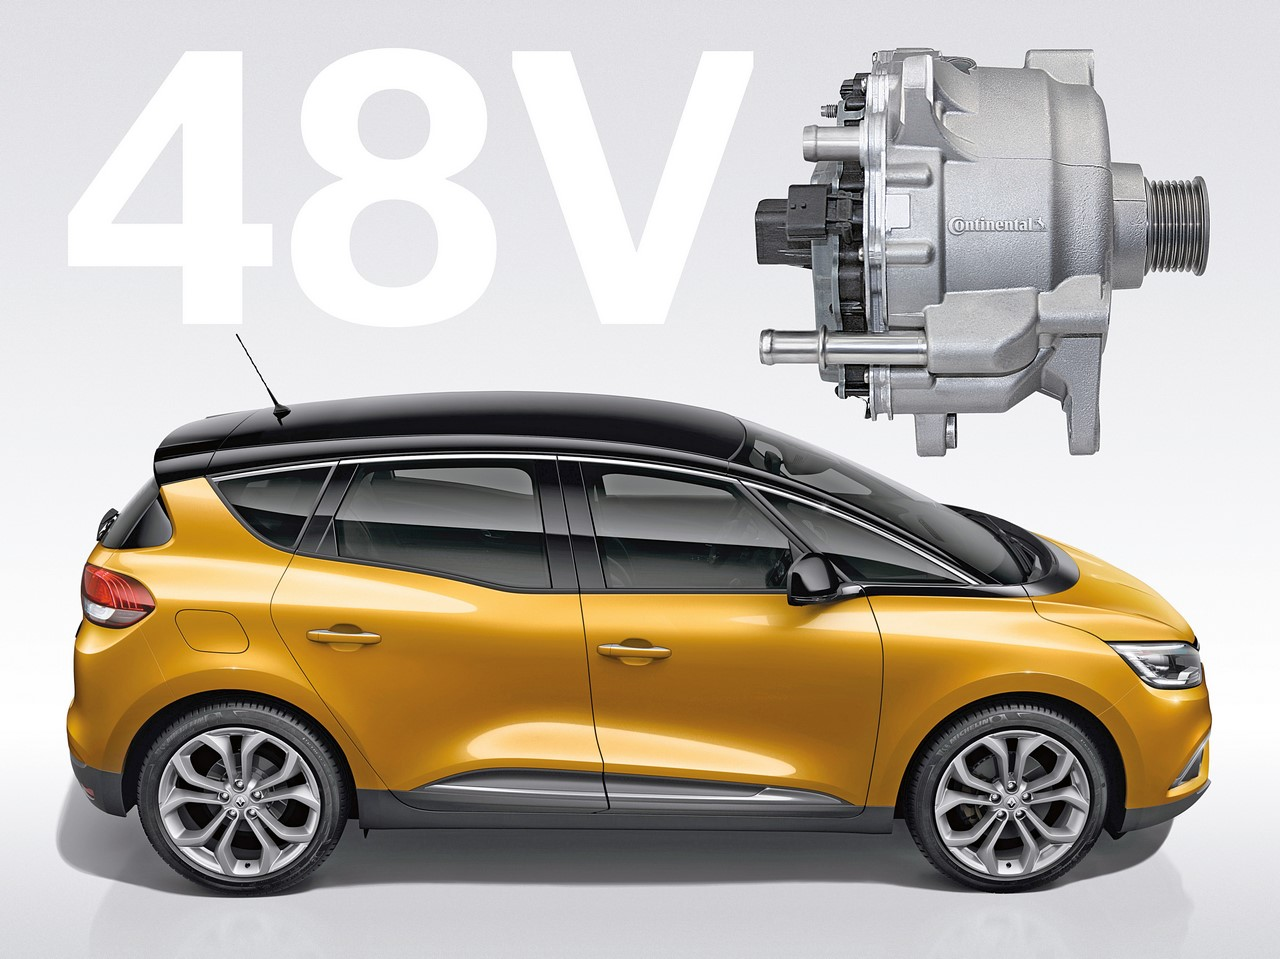 2017 Renault Scenic Hybrid Assist